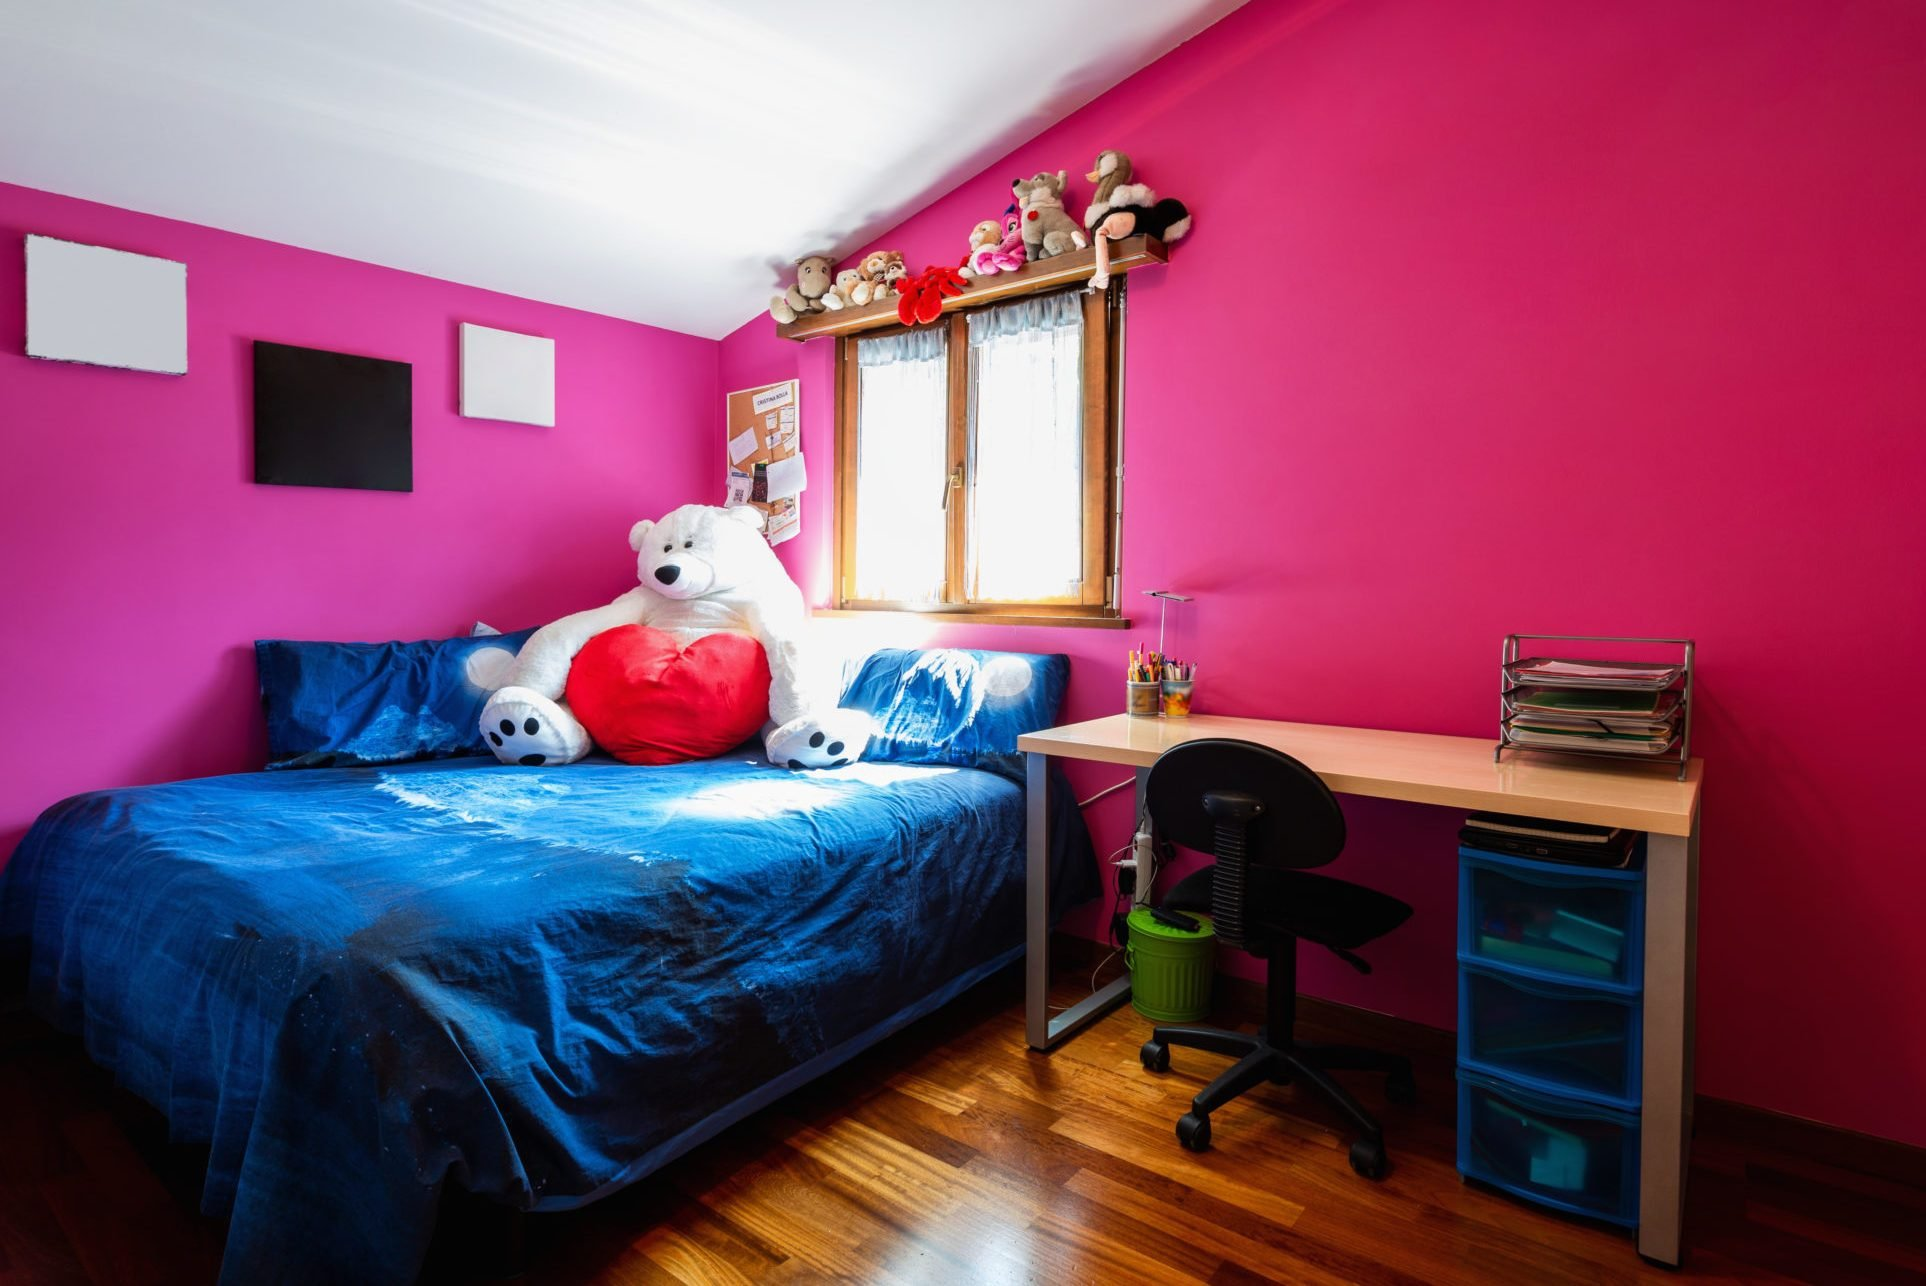 Teen boys bedroom with many plush and parquet